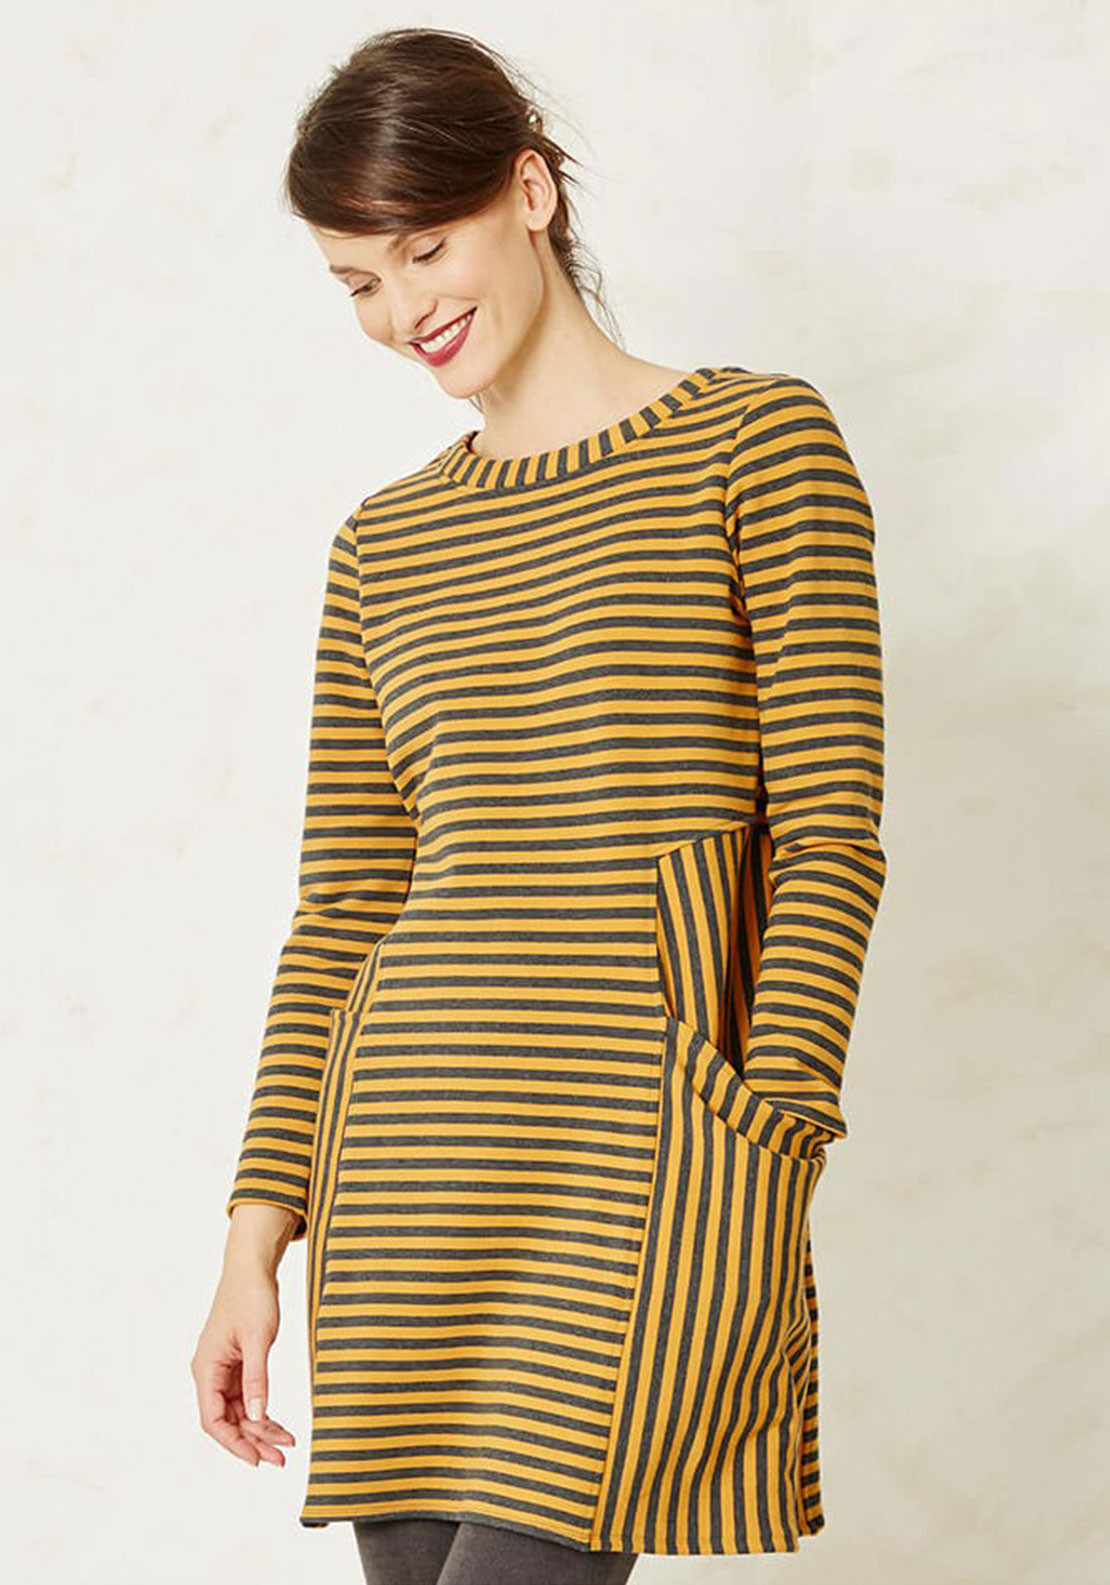 Braintree Arlborg Striped Tunic Dress, Mustard and Grey